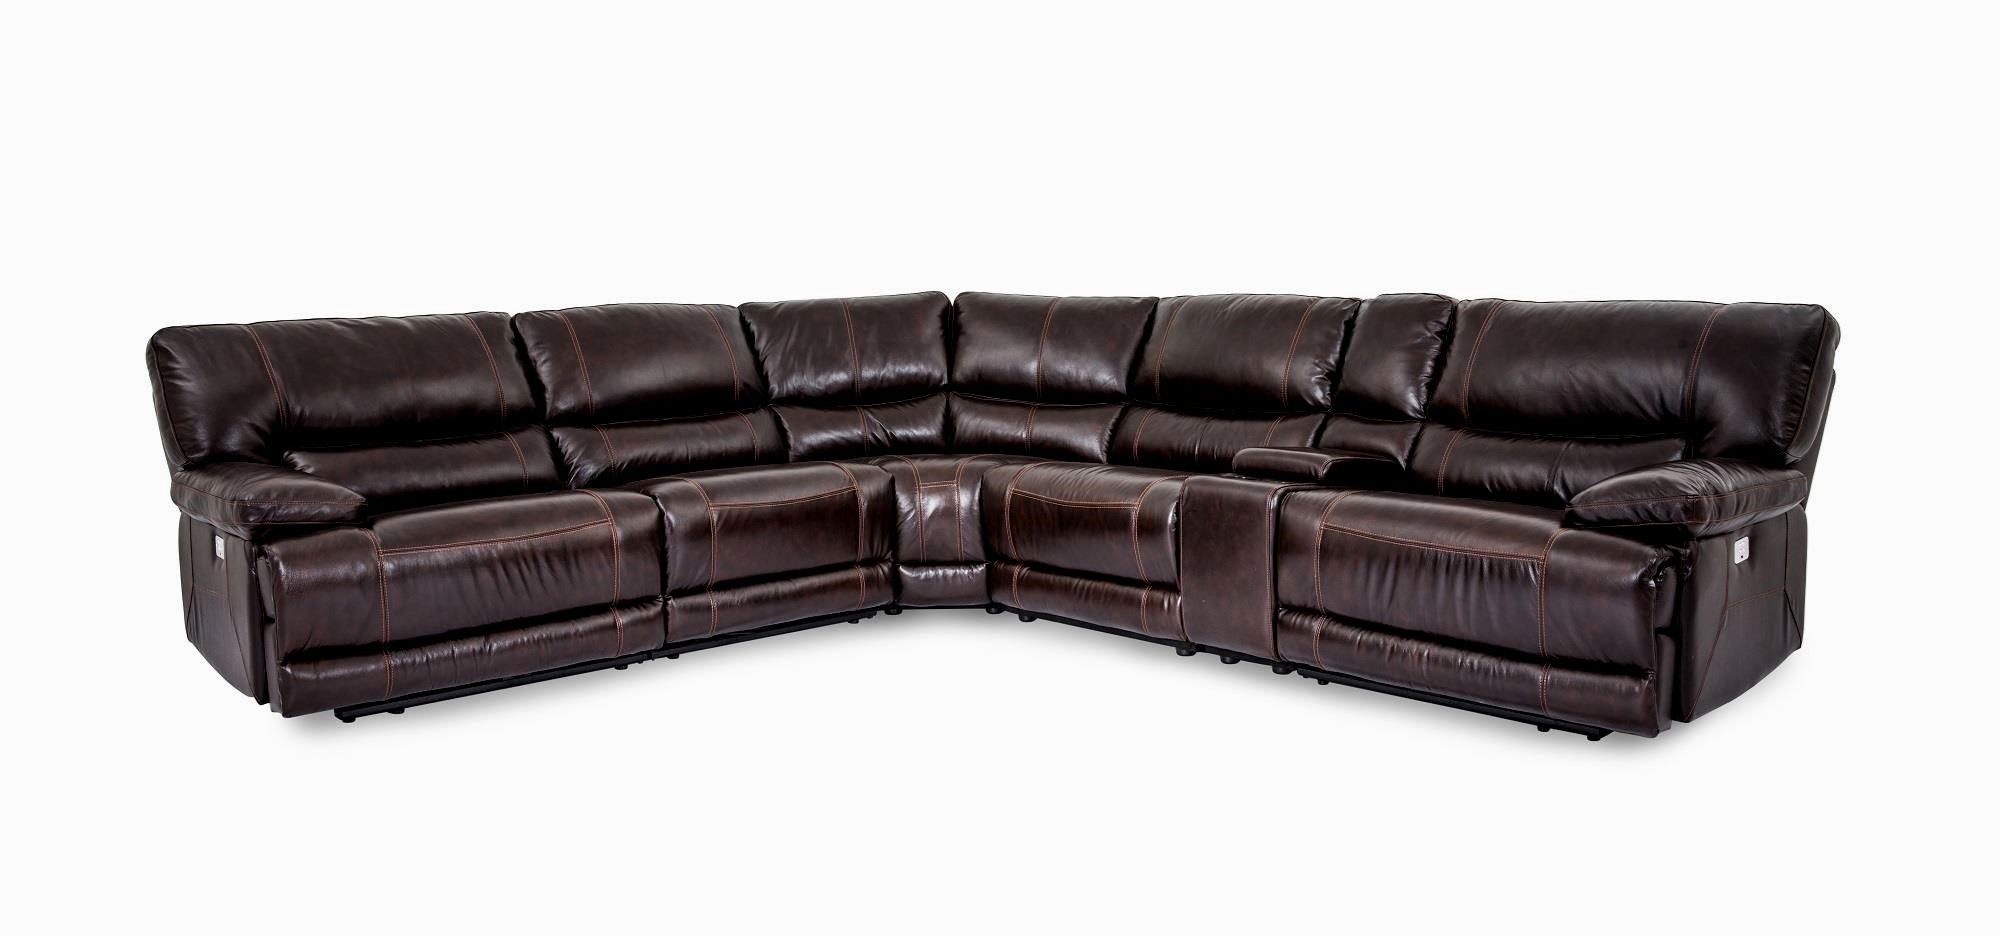 superb serta upholstery sofa model-Stylish Serta Upholstery sofa Gallery